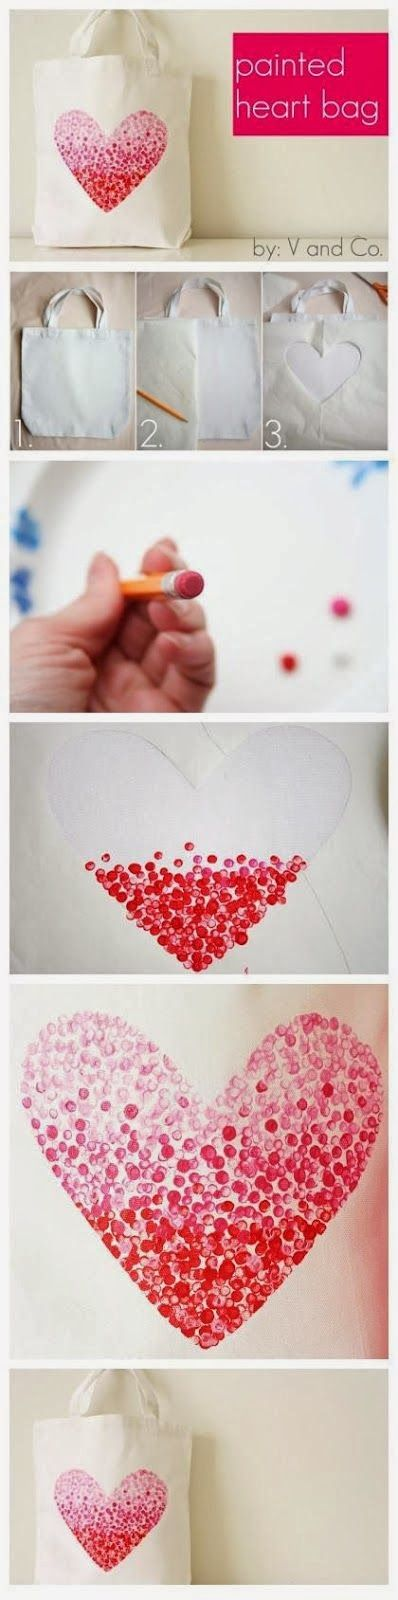 DIY Stamp Paint Heart Canvas Tote Bag - Cut a heart shape on wax paper and place it on the bag, dot with paint and remove the wax paper